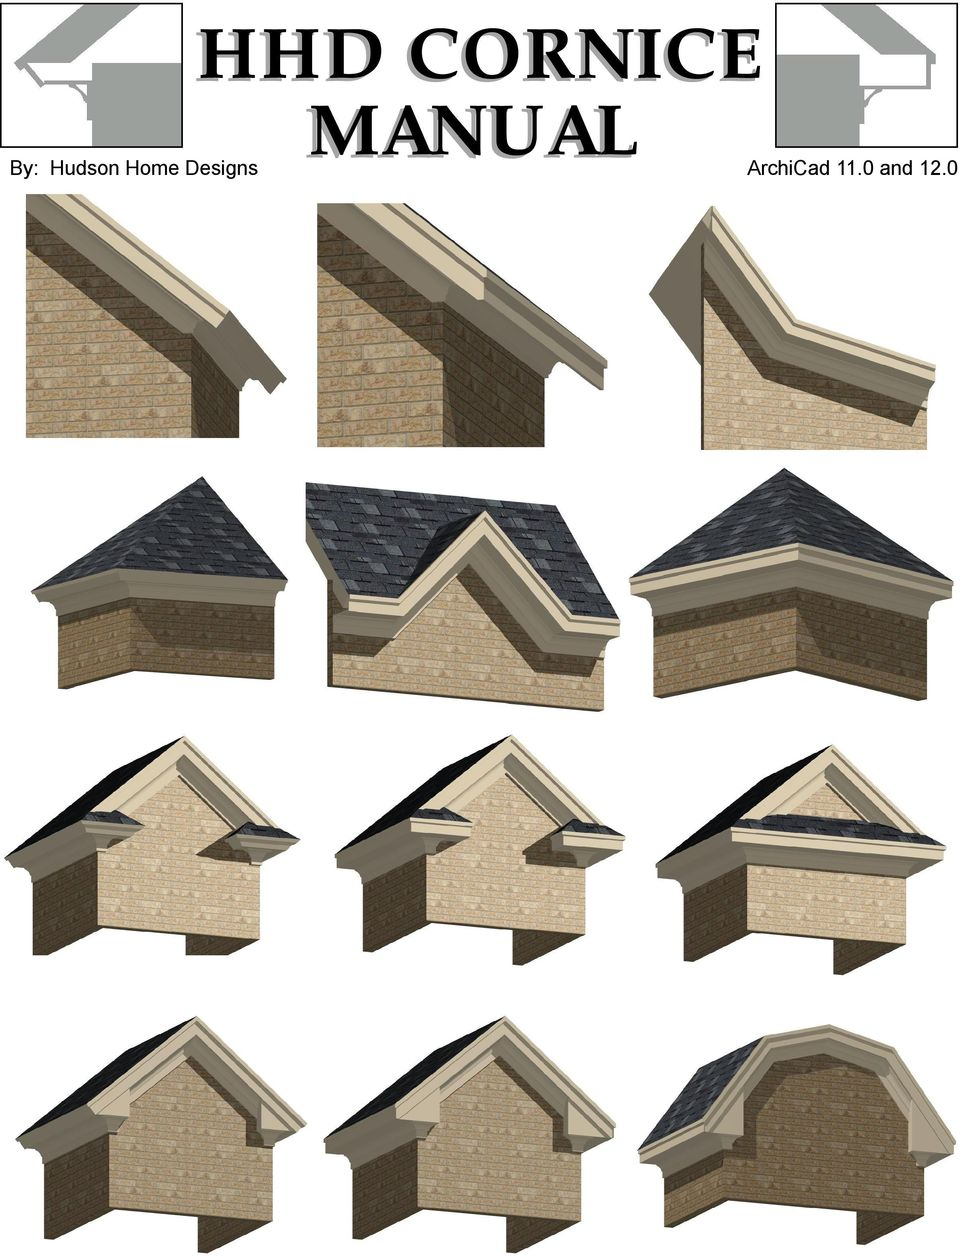 Hhd cornice manual by hudson home designs archicad 11 0 for Hudson home designs